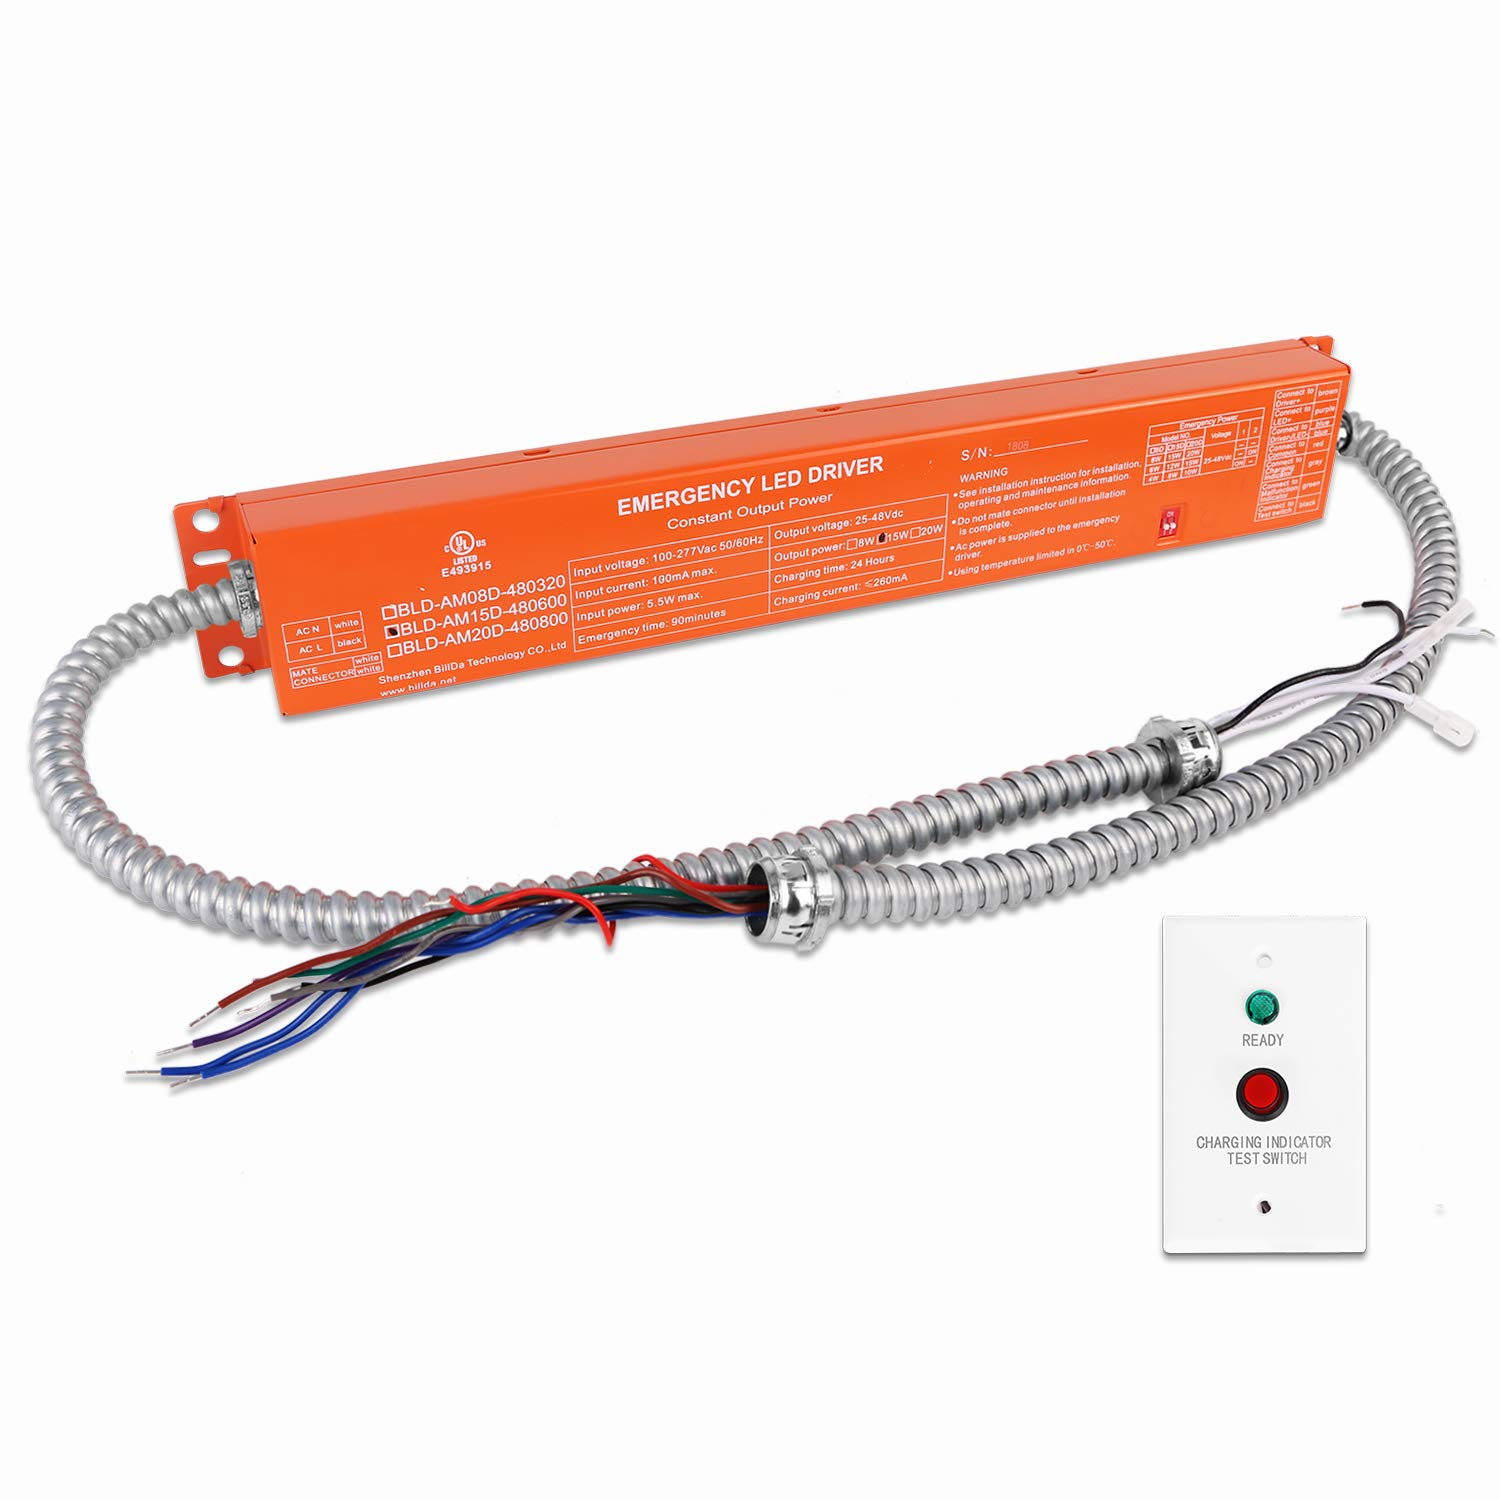 Hykolity 15W 25-48VDC LED Emergency Backup Battery, Rechargable LED Emergency Driver for 15-225W LED Light with External Driver,90 Minutes Min Emergency Time and 24 Hours Min Recharge Time.